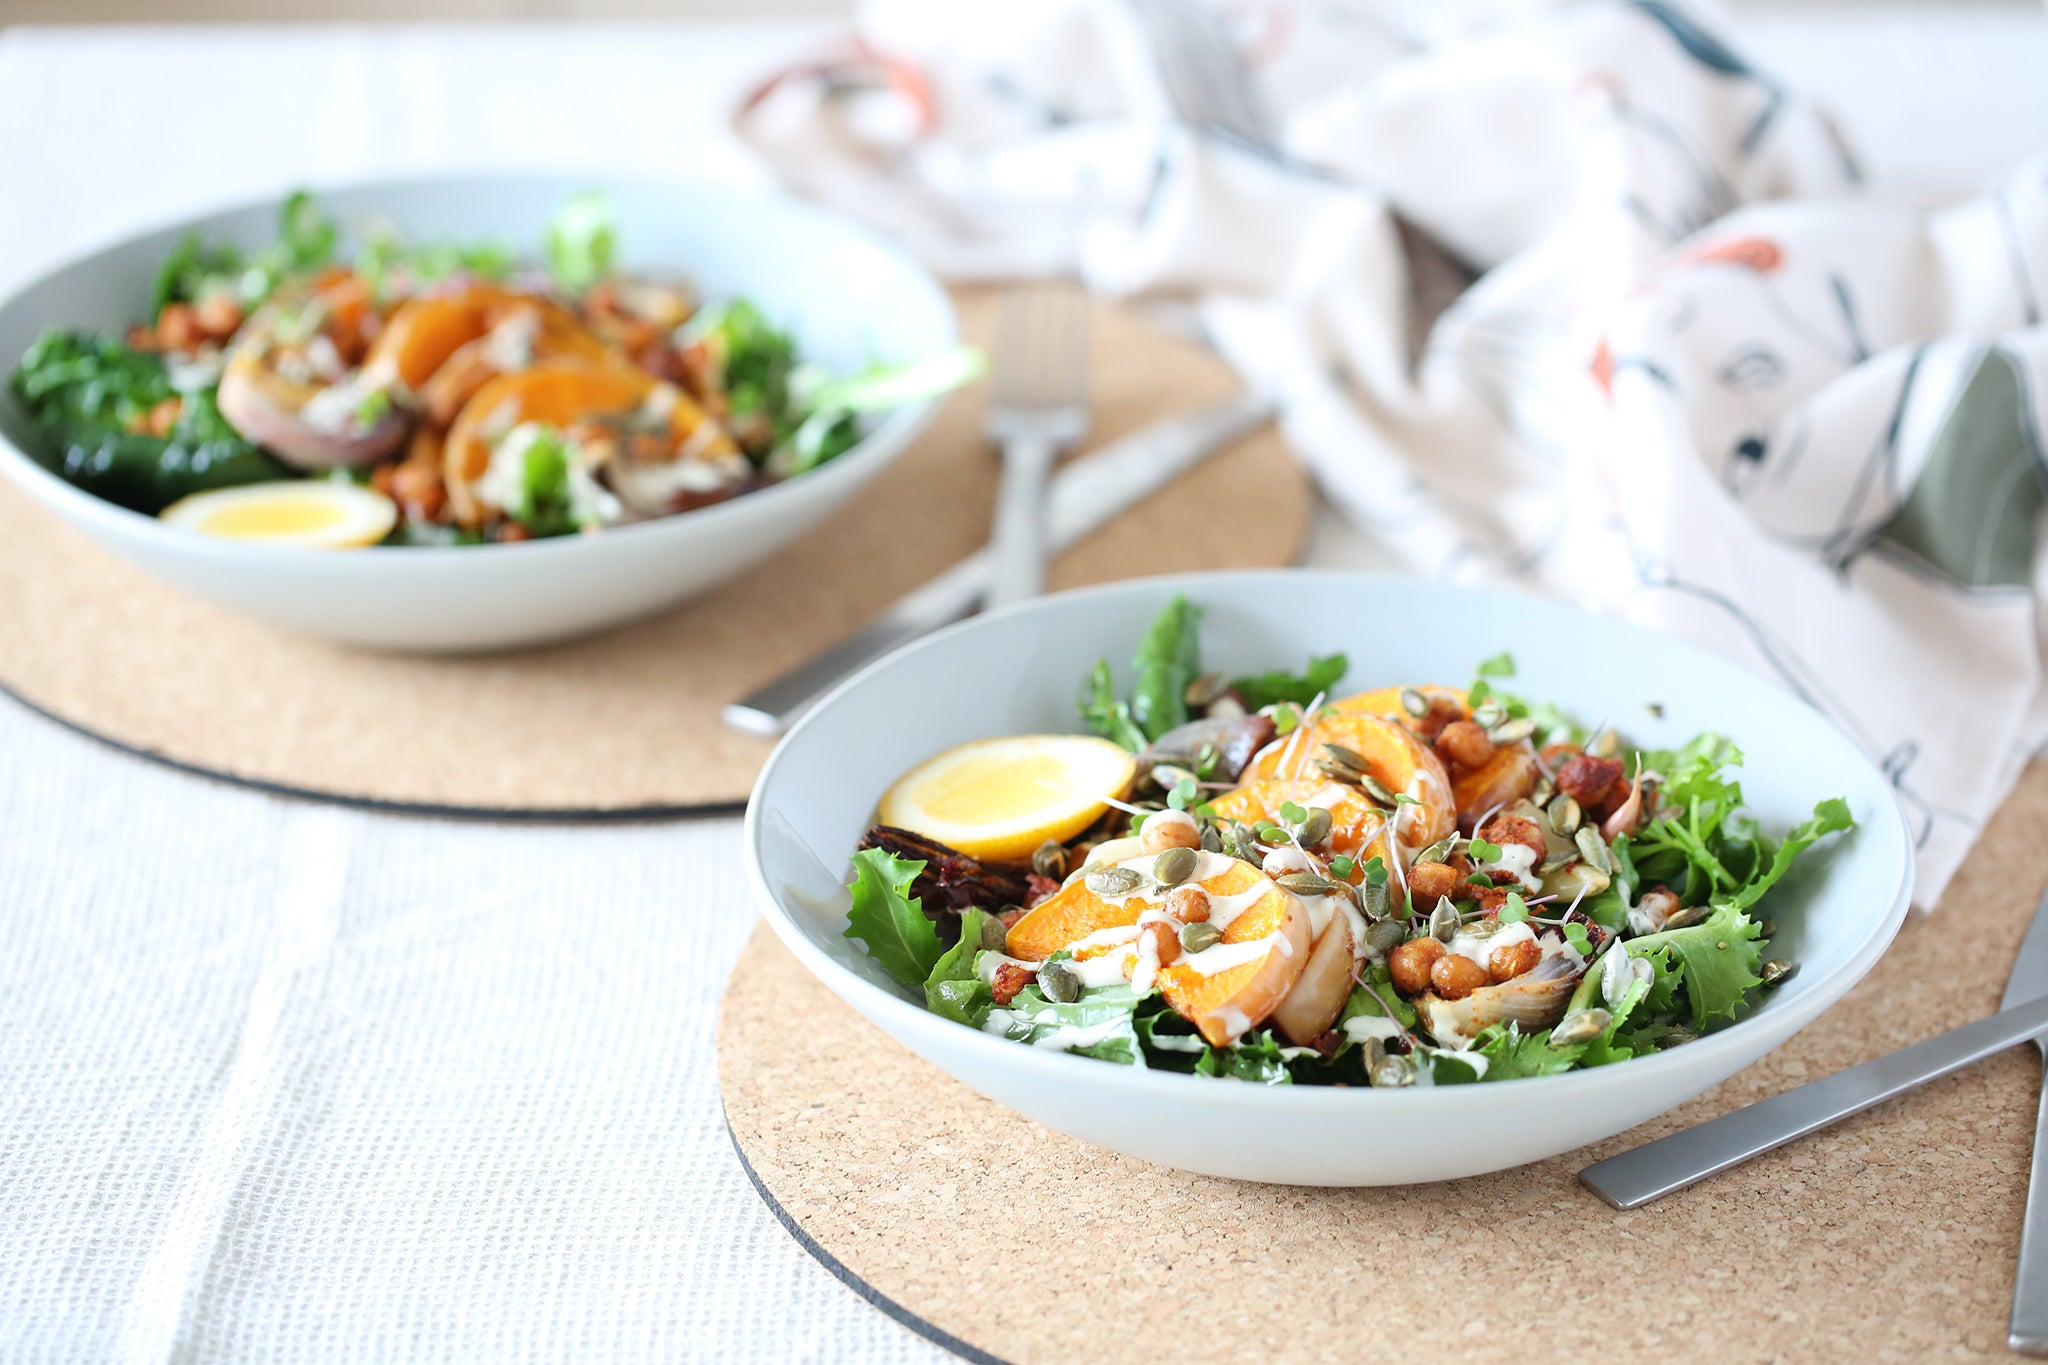 Spiced Pumpkin and Chickpea Salad